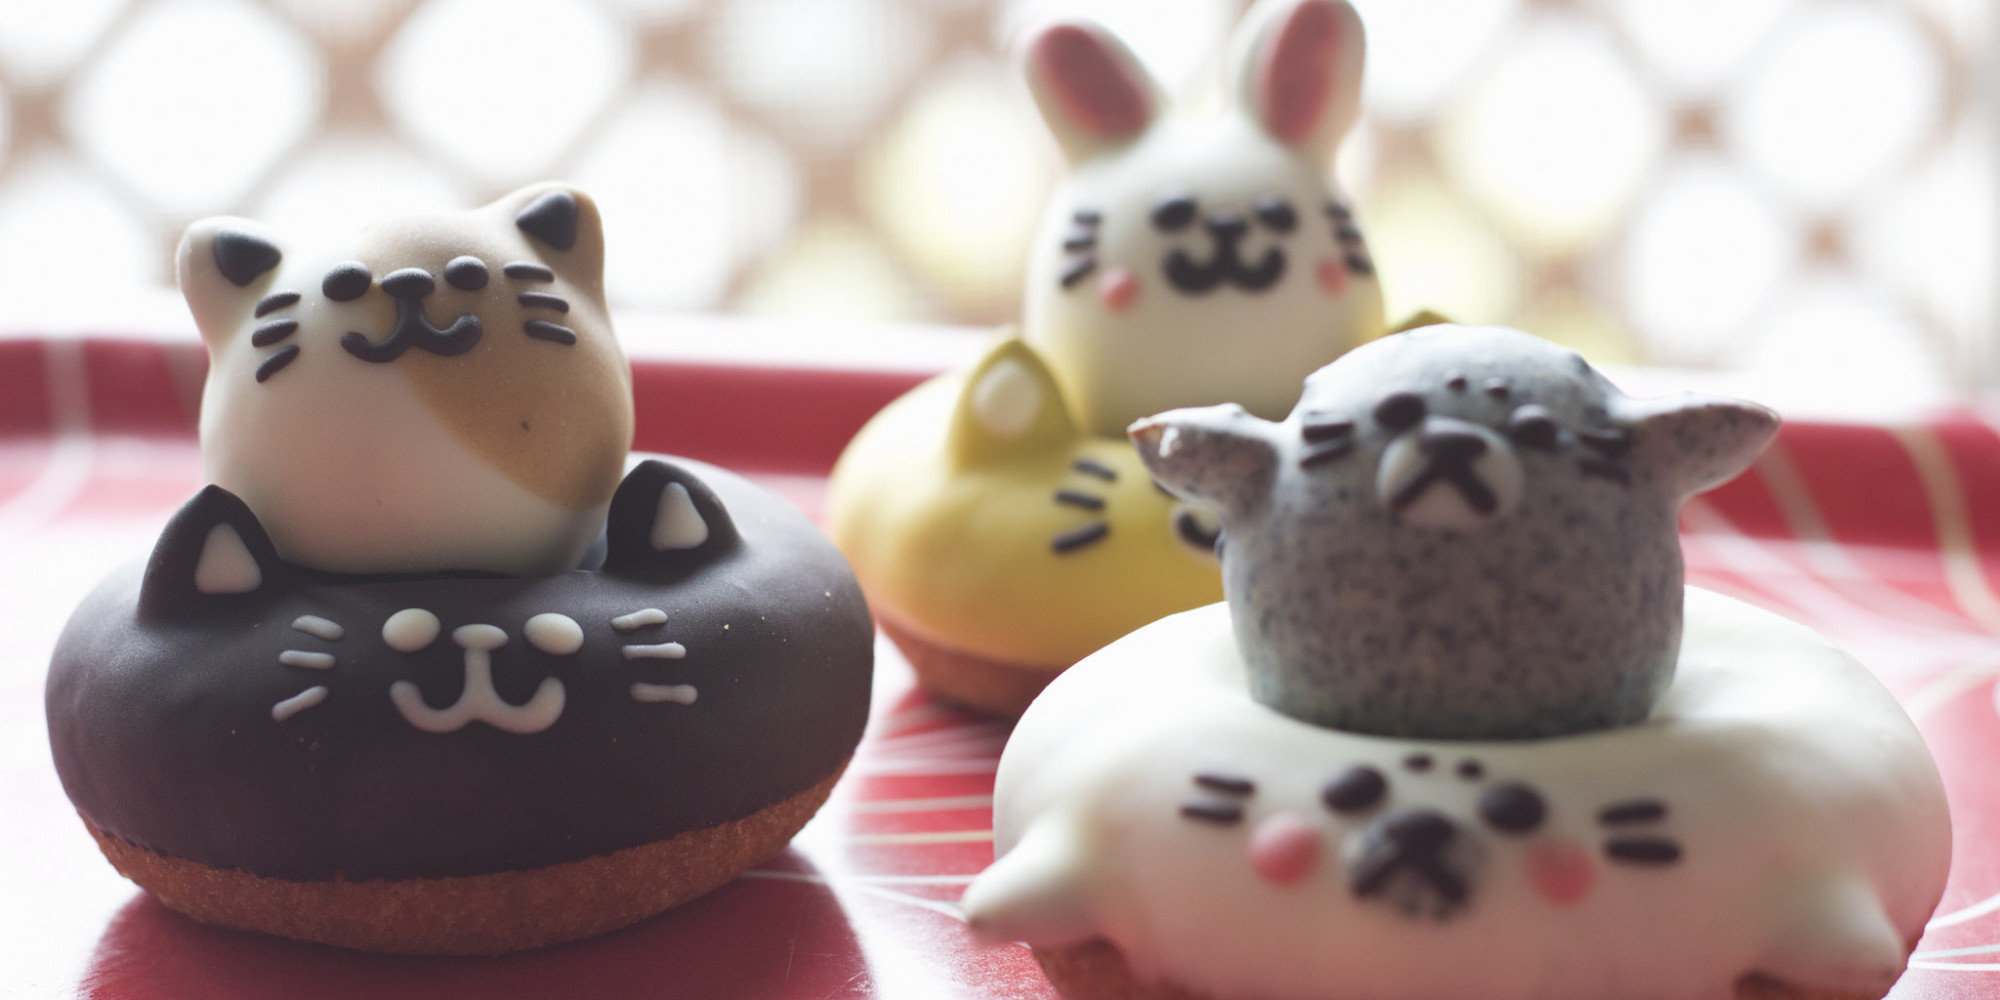 Call Off The Search The Cutest Kitty Cat Donuts Have Been